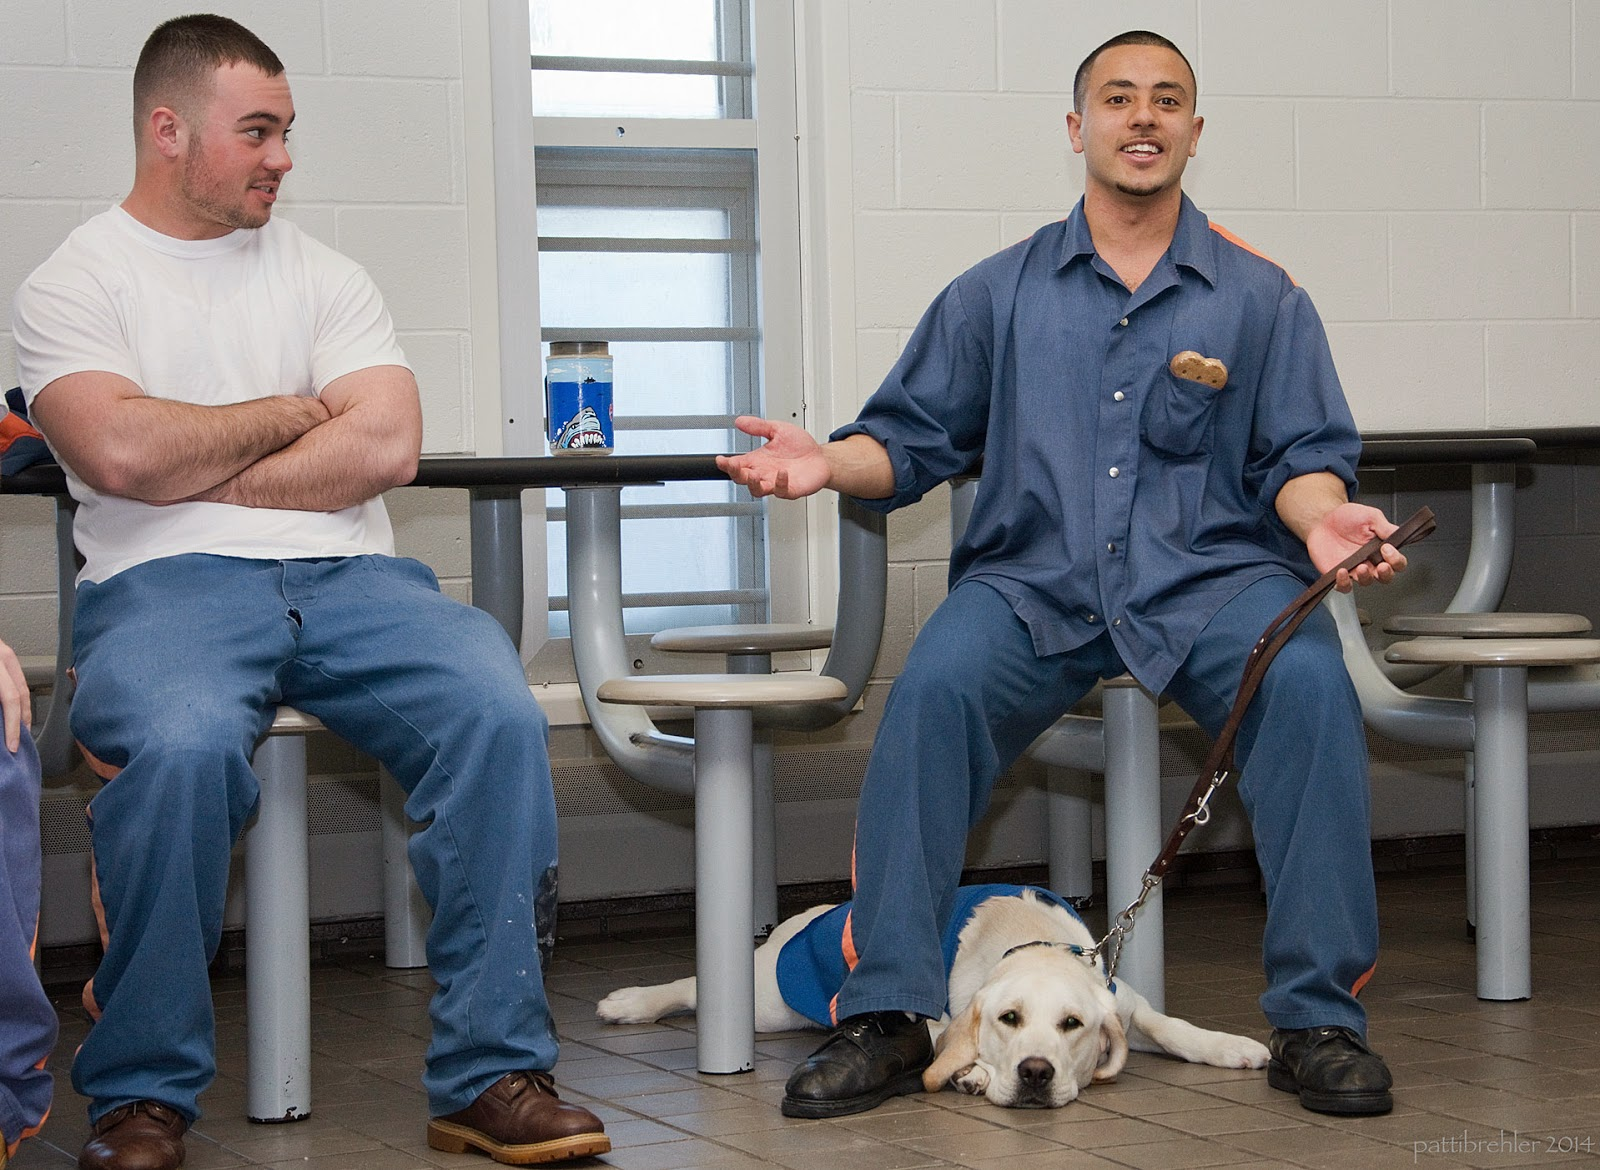 Two young men dressed in prison blues sit on cafeteria stools. The man on the right is gesturing to the camera, his yellow lab is  lying between his legs facing the camers. The man on the left has his arms folded and is looking at the other man.